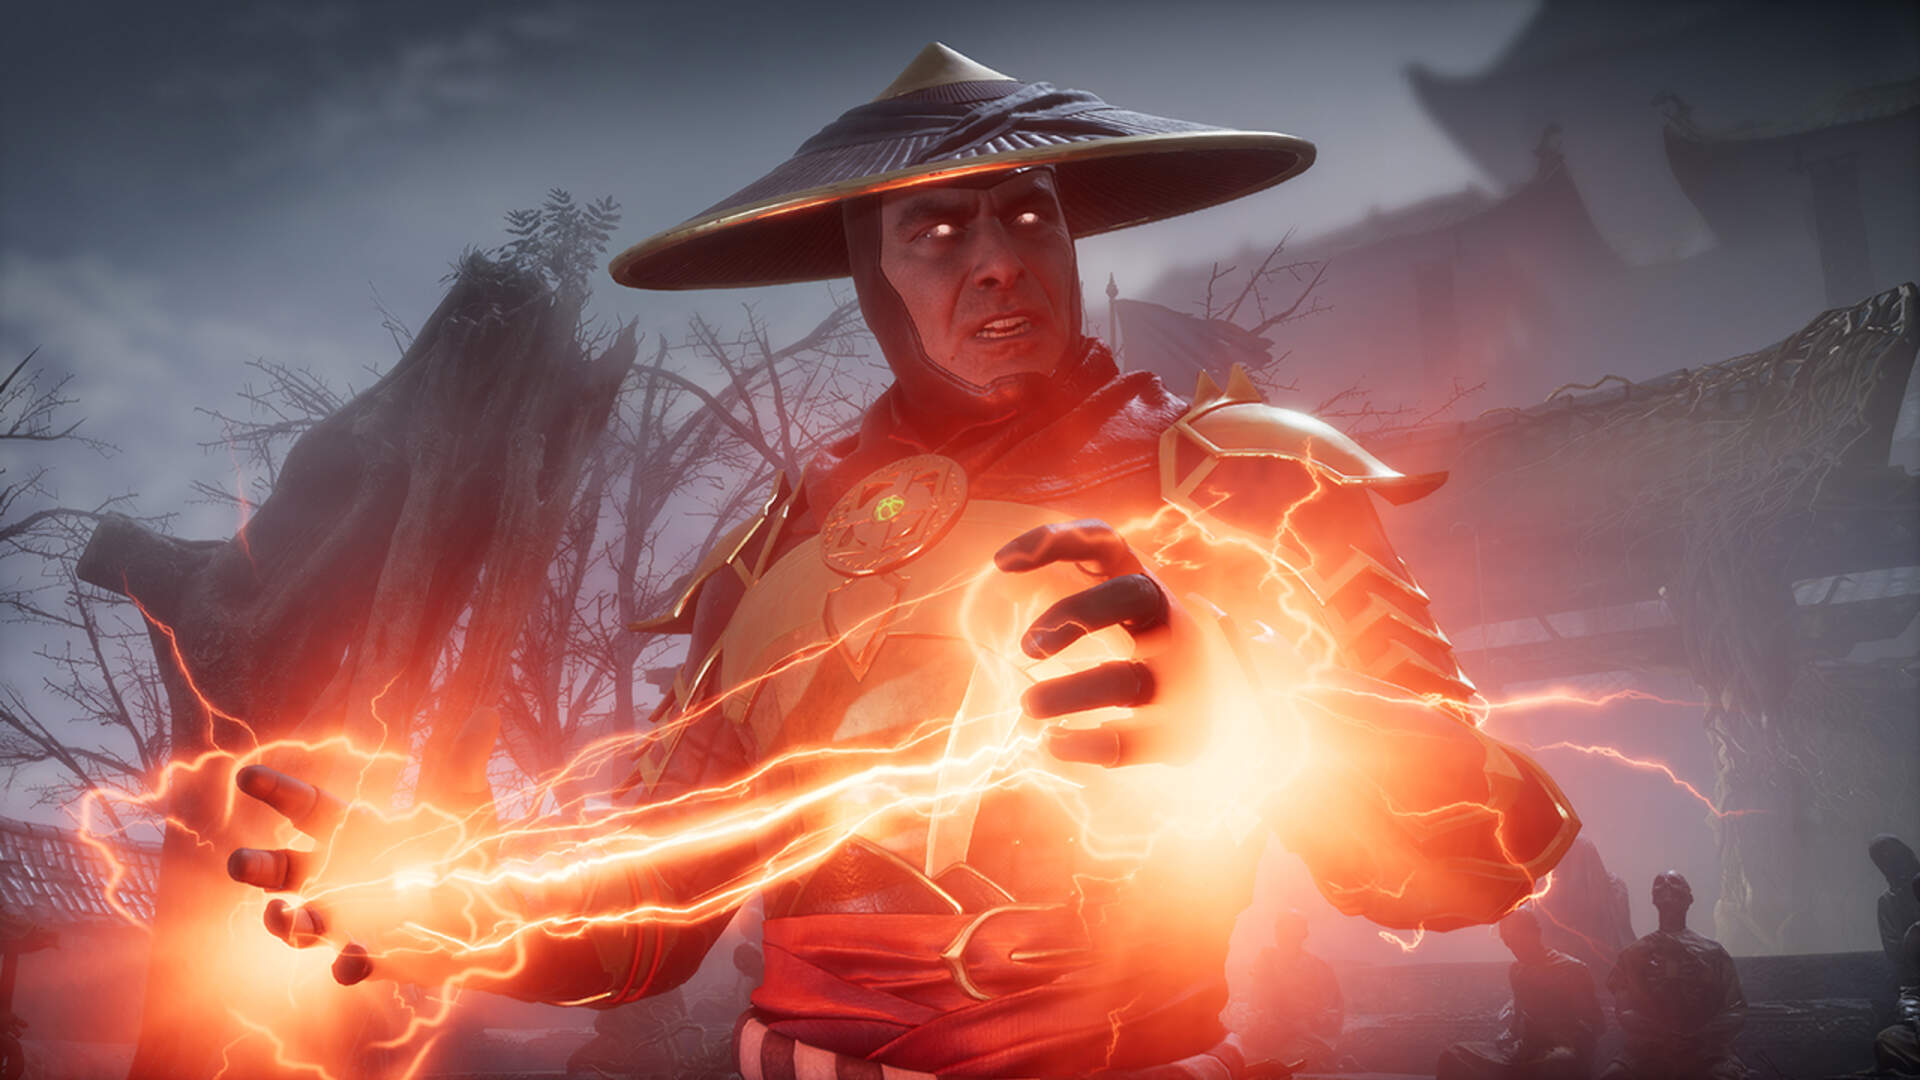 Mysterious Mortal Kombat 11 Trailer Teases DLC Reveal Tomorrow